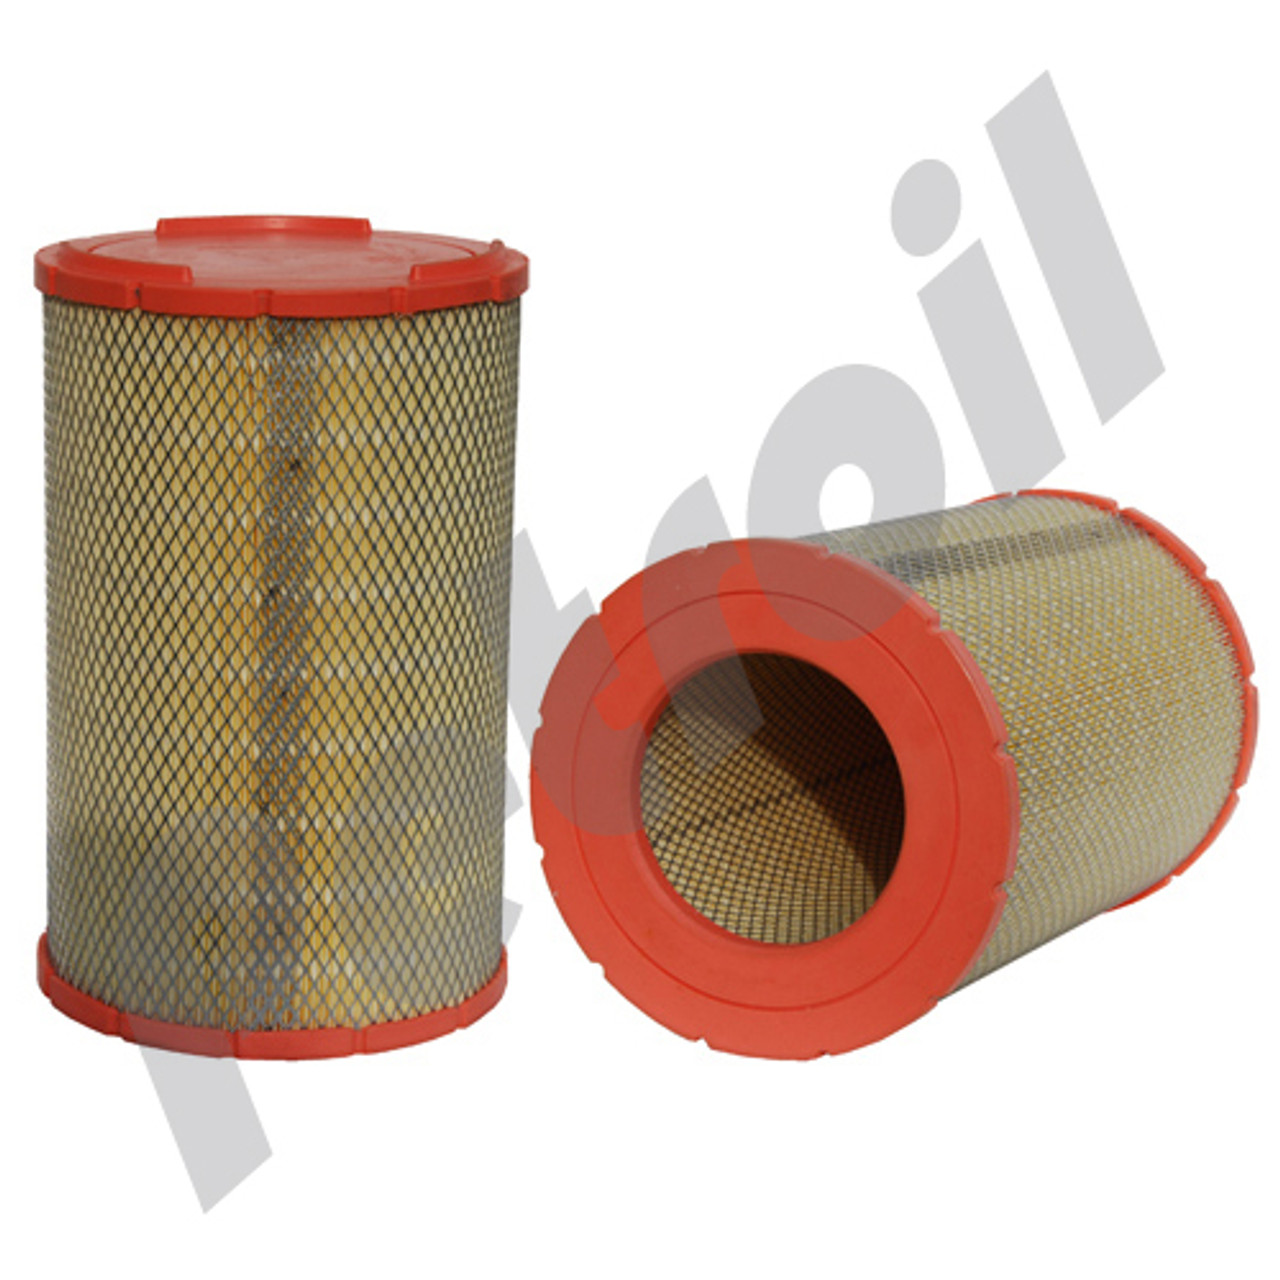 Top Base; 9 in x 3.5 in Airaid 720-477 Universal Clamp-On Air Filter: Oval Tapered; 3.875 in Flange ID; 9 in 98 mm 229 mm 229 mm x89 mm Height; 10.75 in x 5.5 in 273 mm x 140 mm